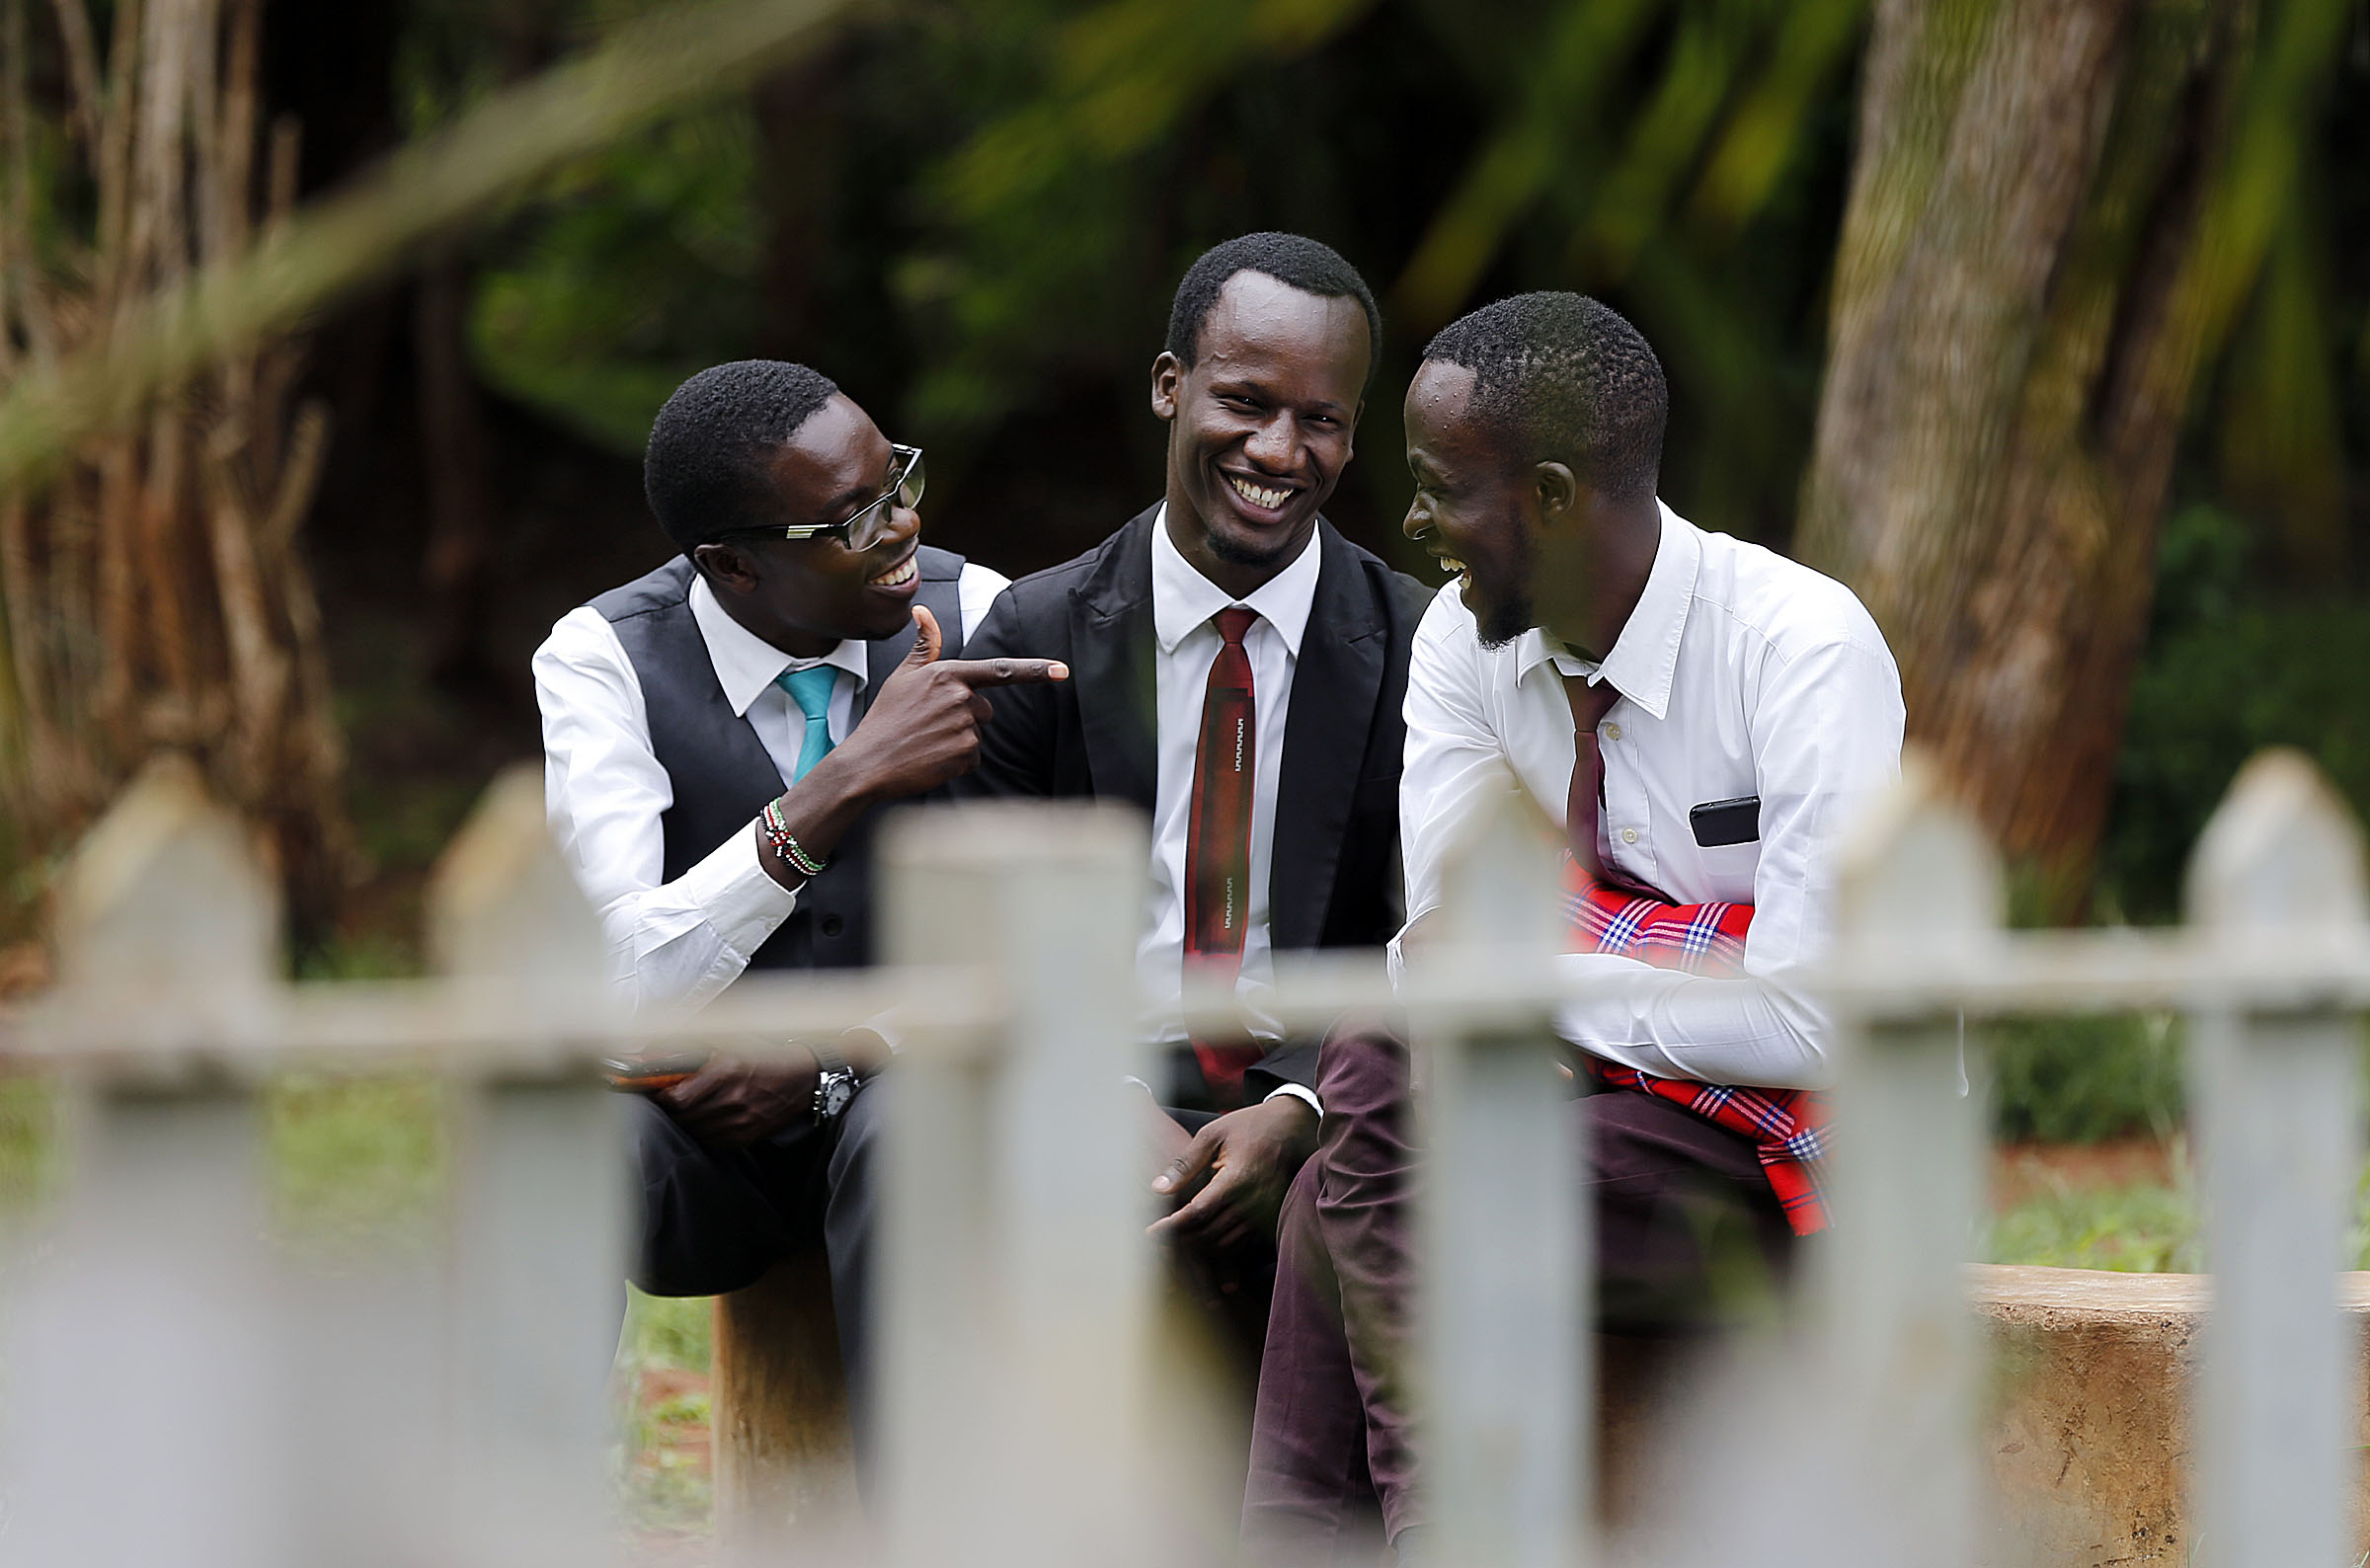 Righton Lukalo Mutasi, left, Bbosa Joseph Malusi and Kennedy Nzuki talk before a special devotional with President Russell M. Nelson in Nairobi, Kenya, on Monday, April 16, 2018.